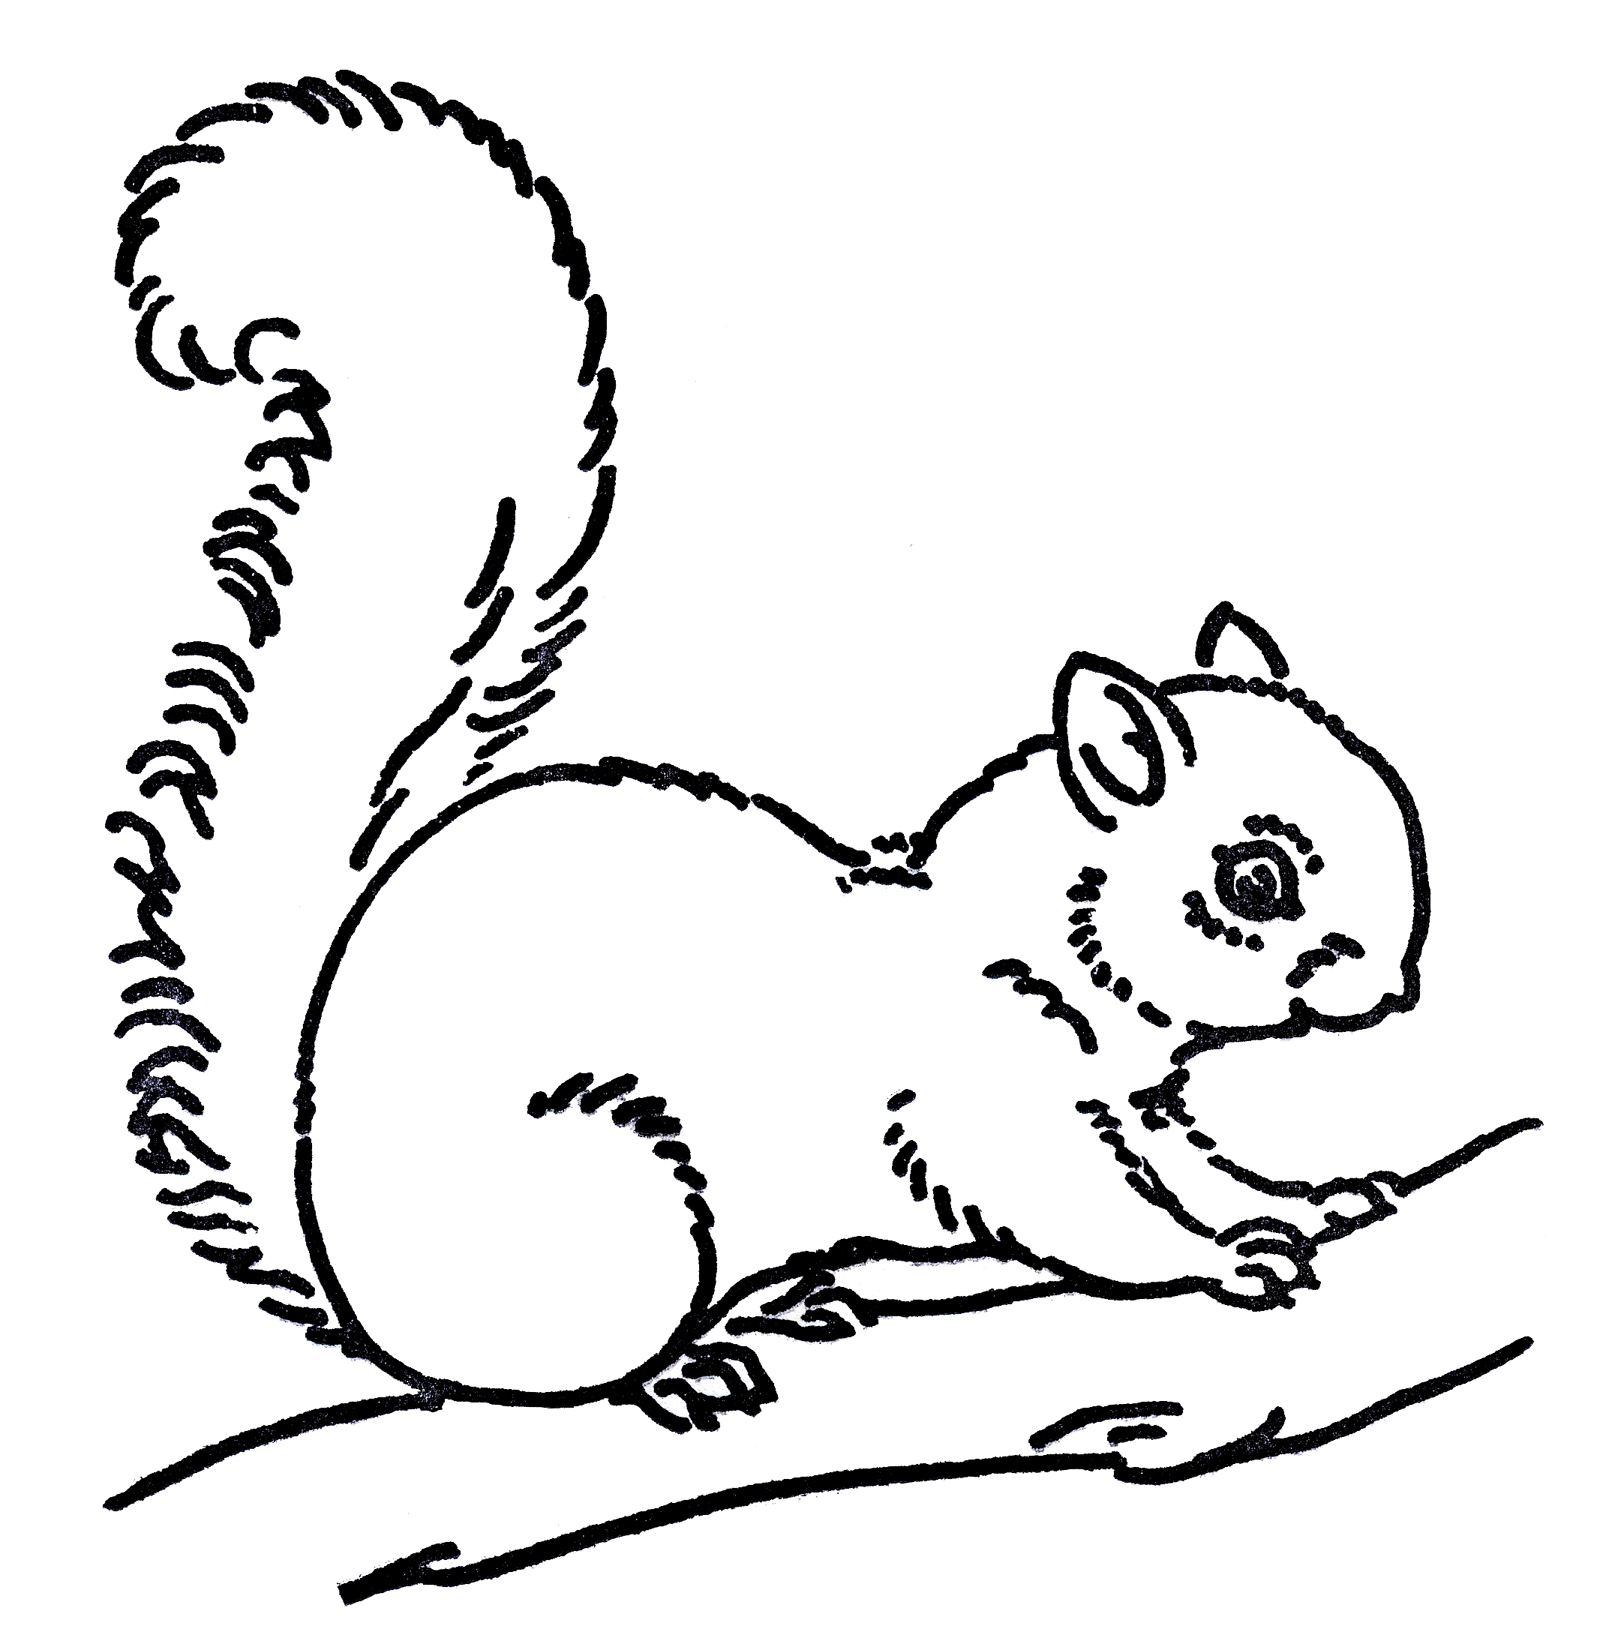 free line art images squirrel drawings the graphics fairy